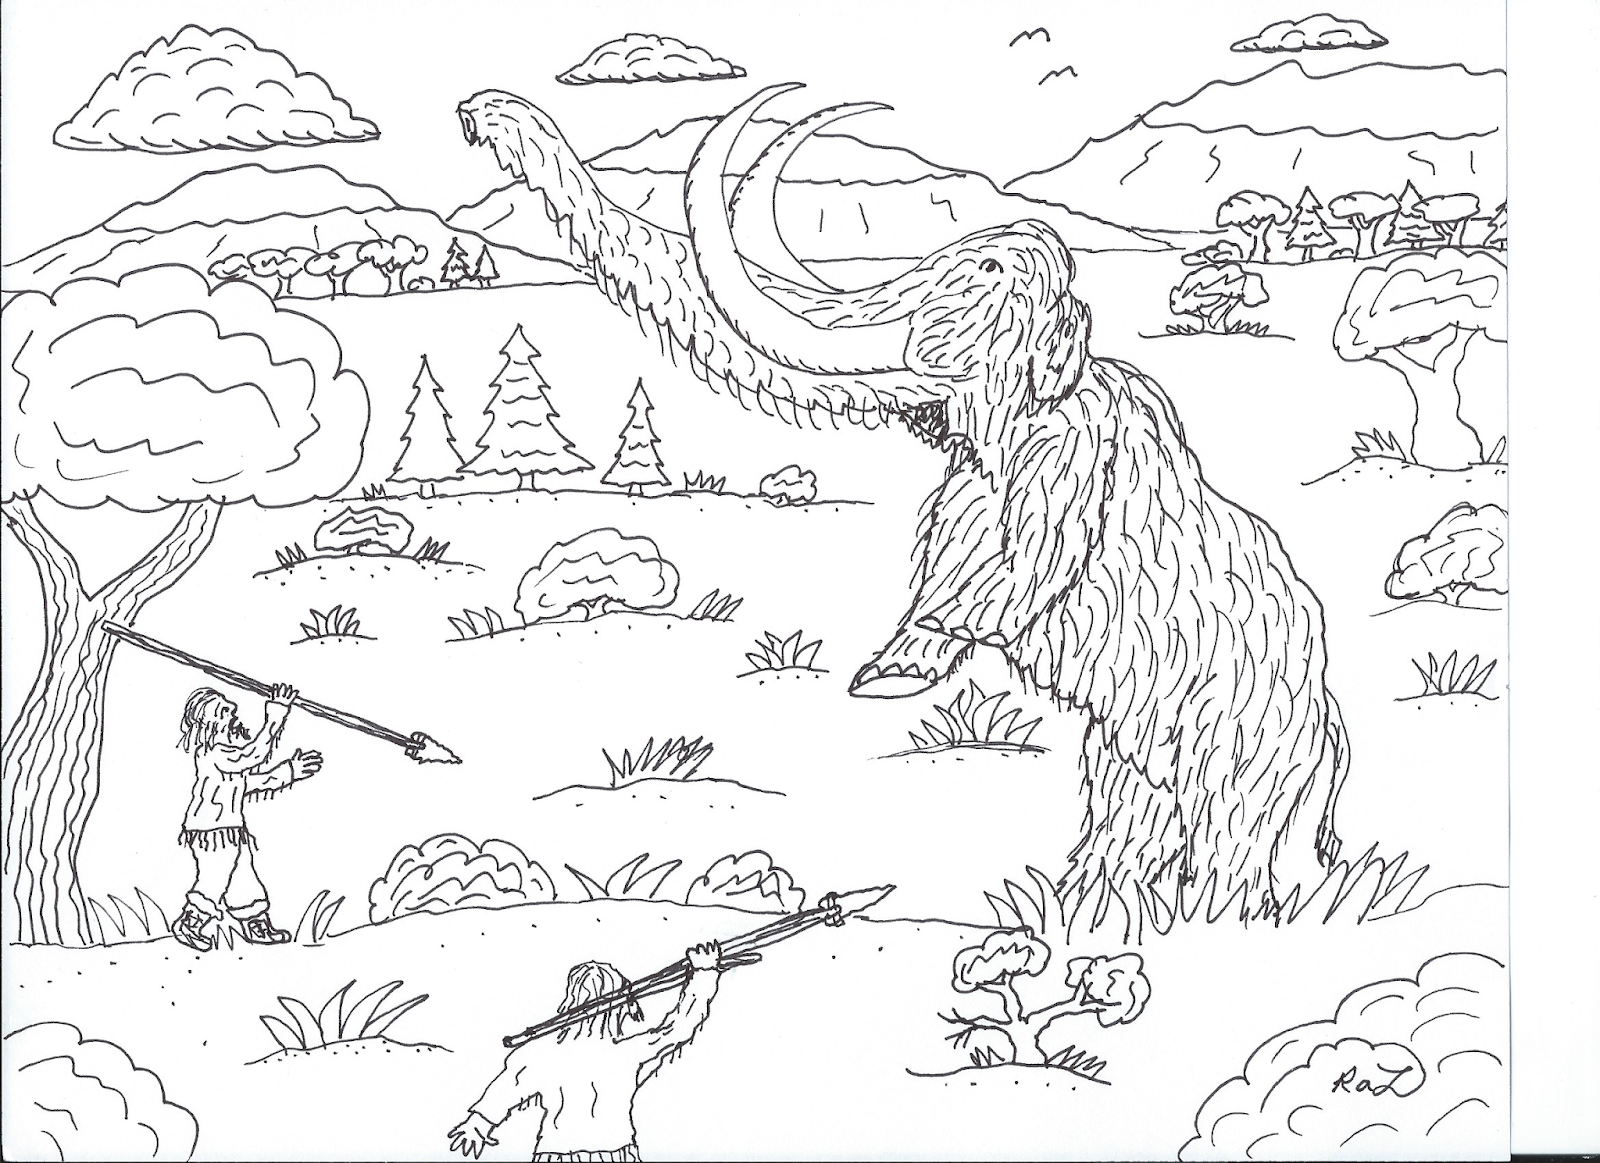 Robin S Great Coloring Pages Prehistoric Mammals With